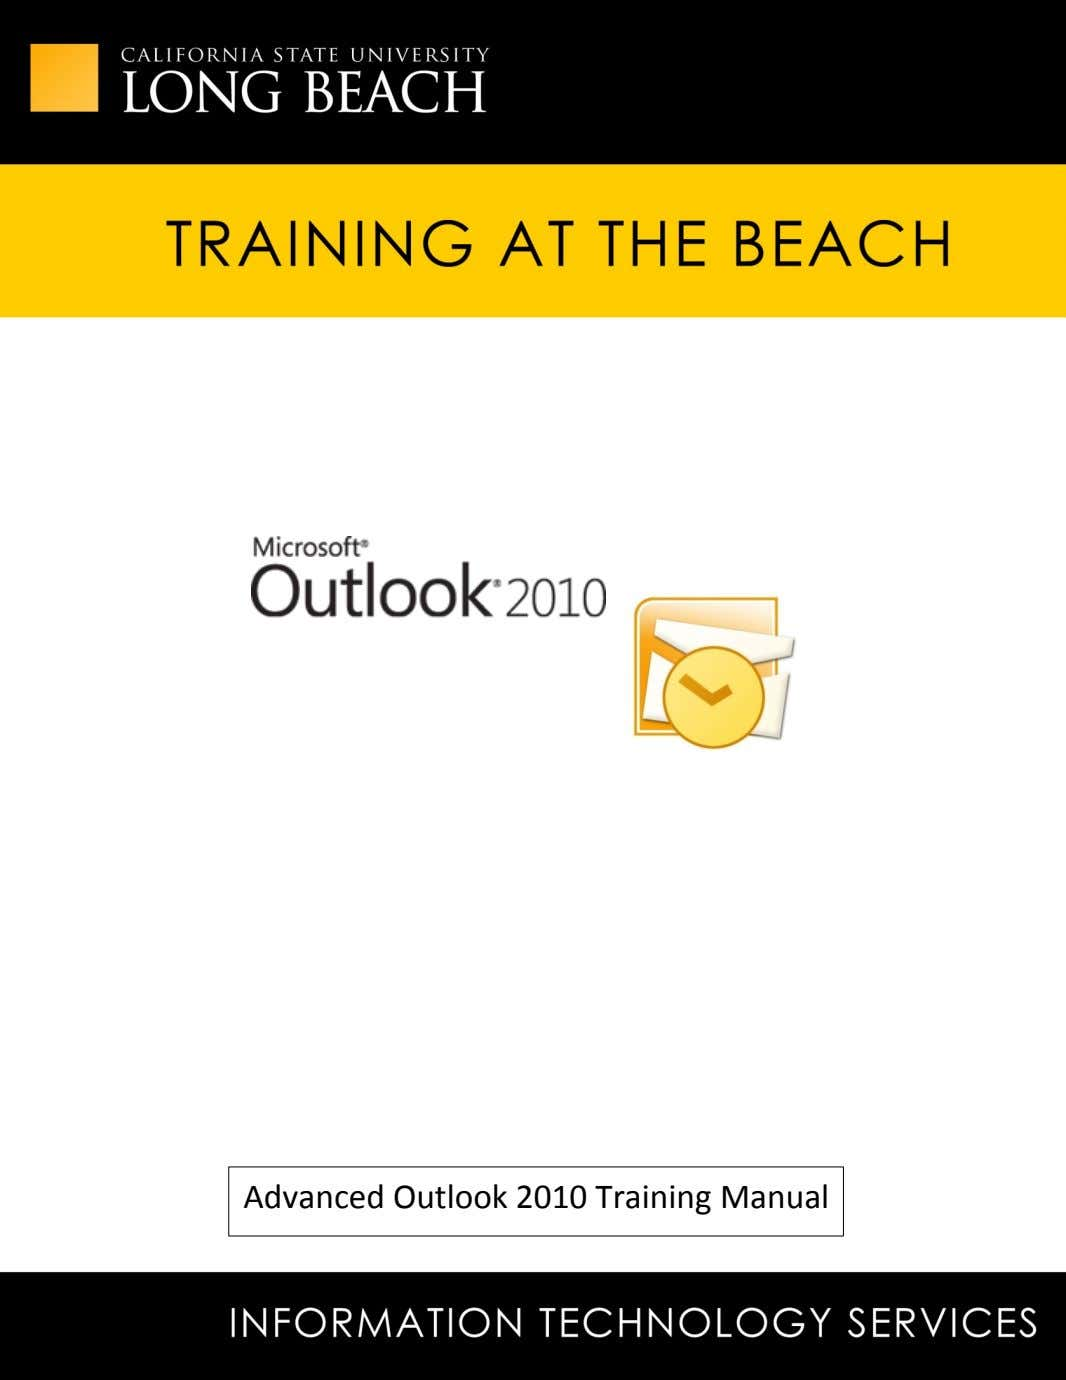 Advanced Outlook 2010 Training Manual 1